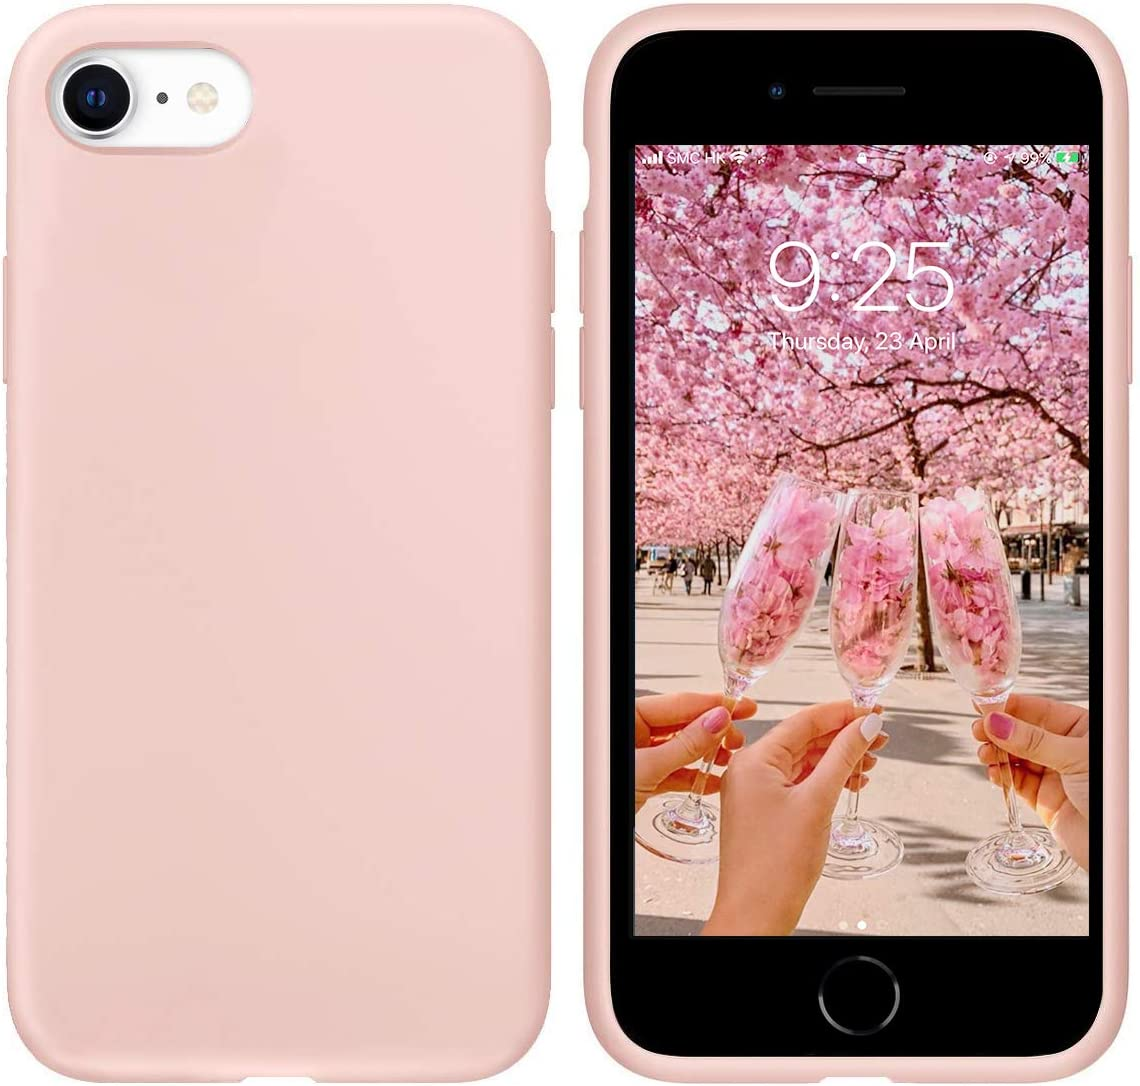 "IceSword iPhone SE 2020 Silicone Case Pink Sand [Upgraded 2nd Generation], iPhone 7/8 (4.7""), Liquid Silicone Gel Rubber, Full Body Drop Protection (4.7"") iPhone 7/8/iPhone SE 2020 - Pink Sand"